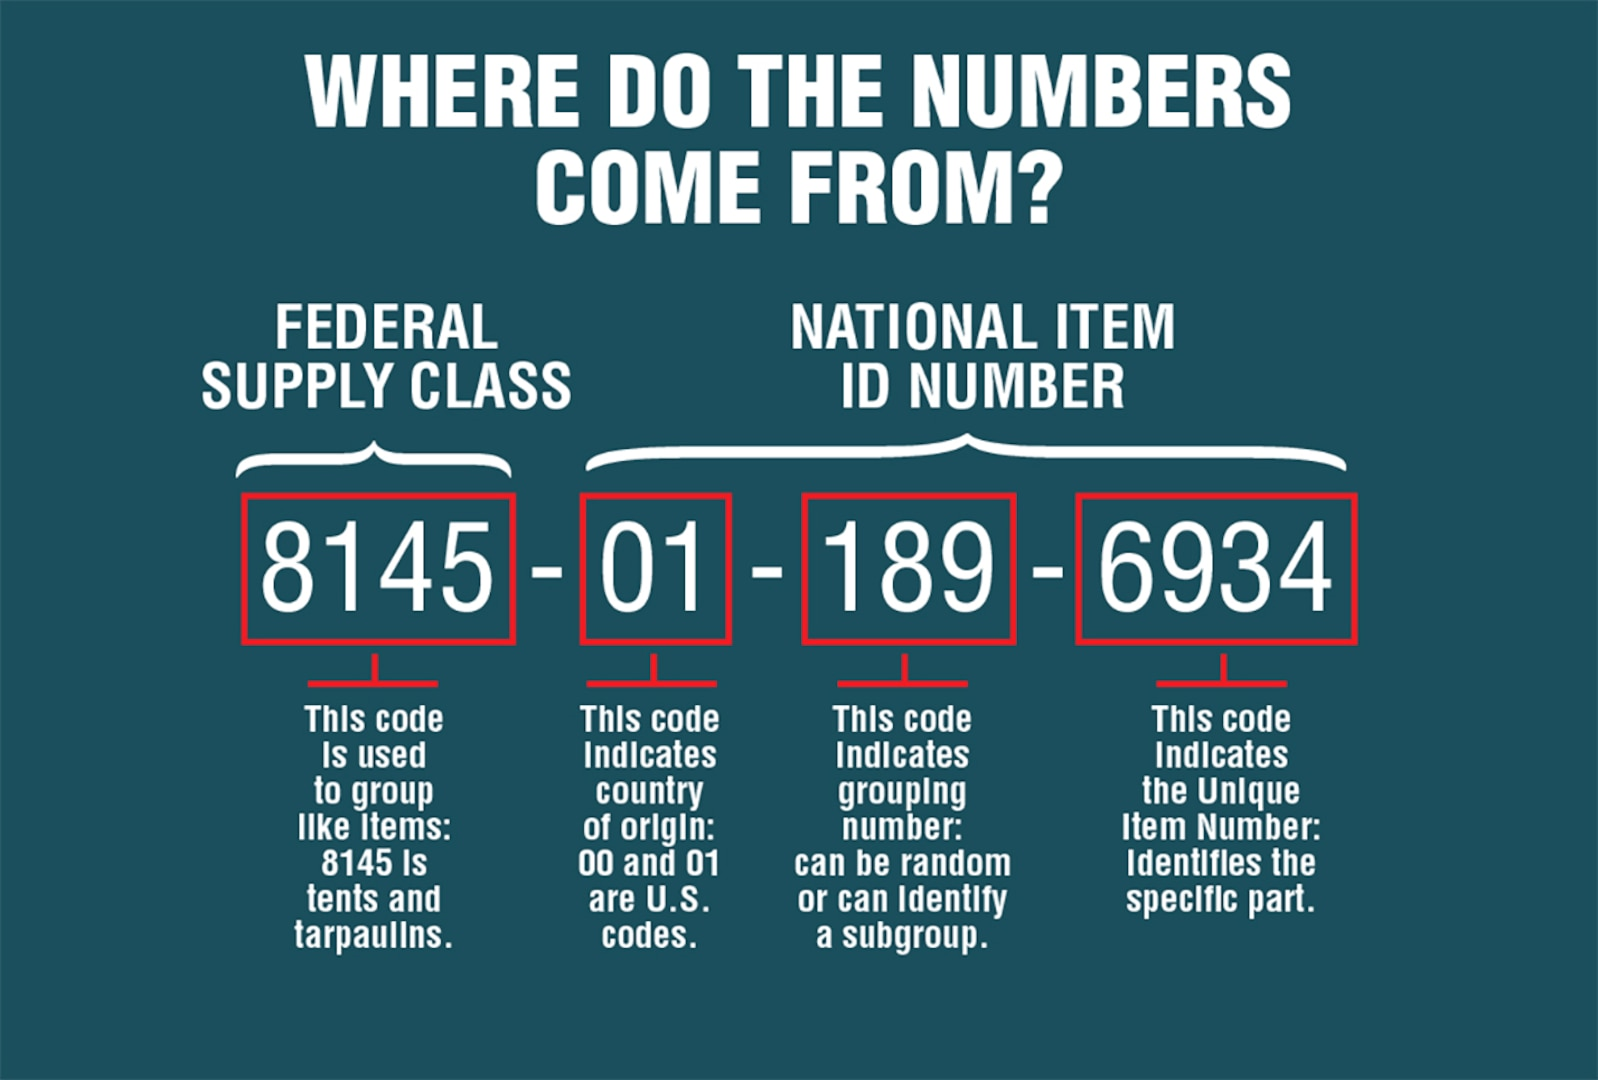 National Stock Numbers are derived from Federal Supply Class numbers and Nationa Item ID numbers.